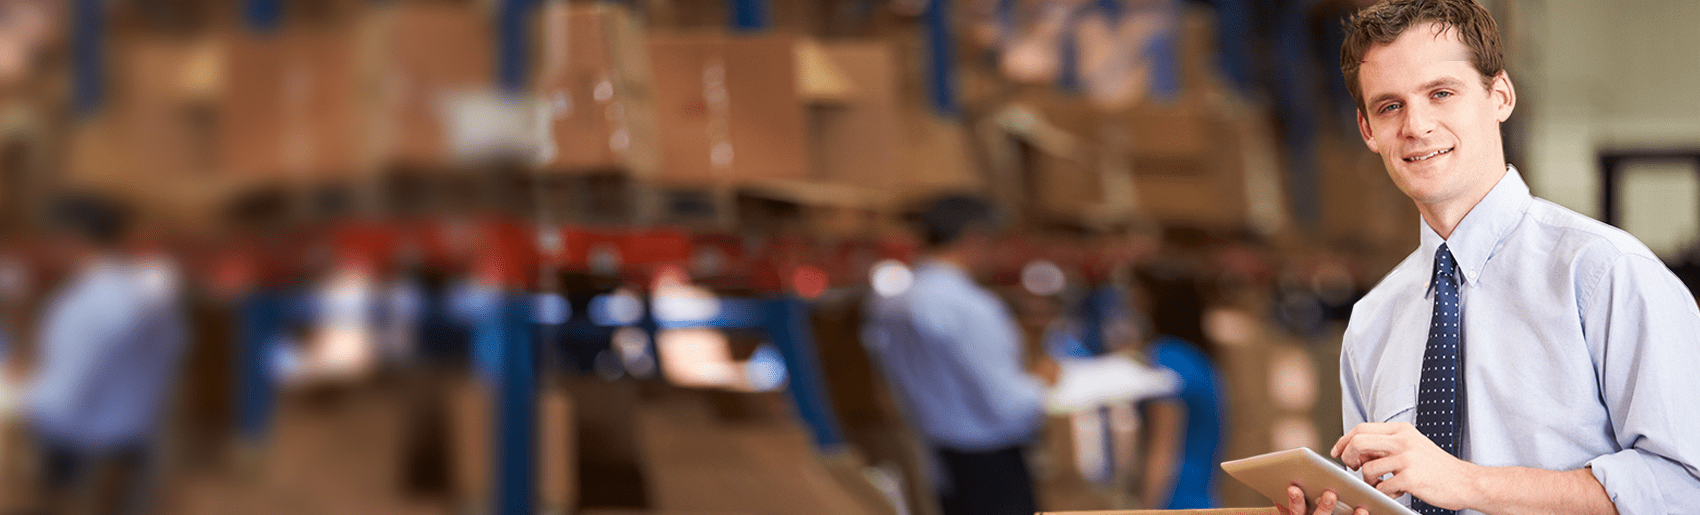 StayinFront Mobile Retail Distributor Management Solution improves your visibility, efficiency and communication between field teams, operations and distribution centers